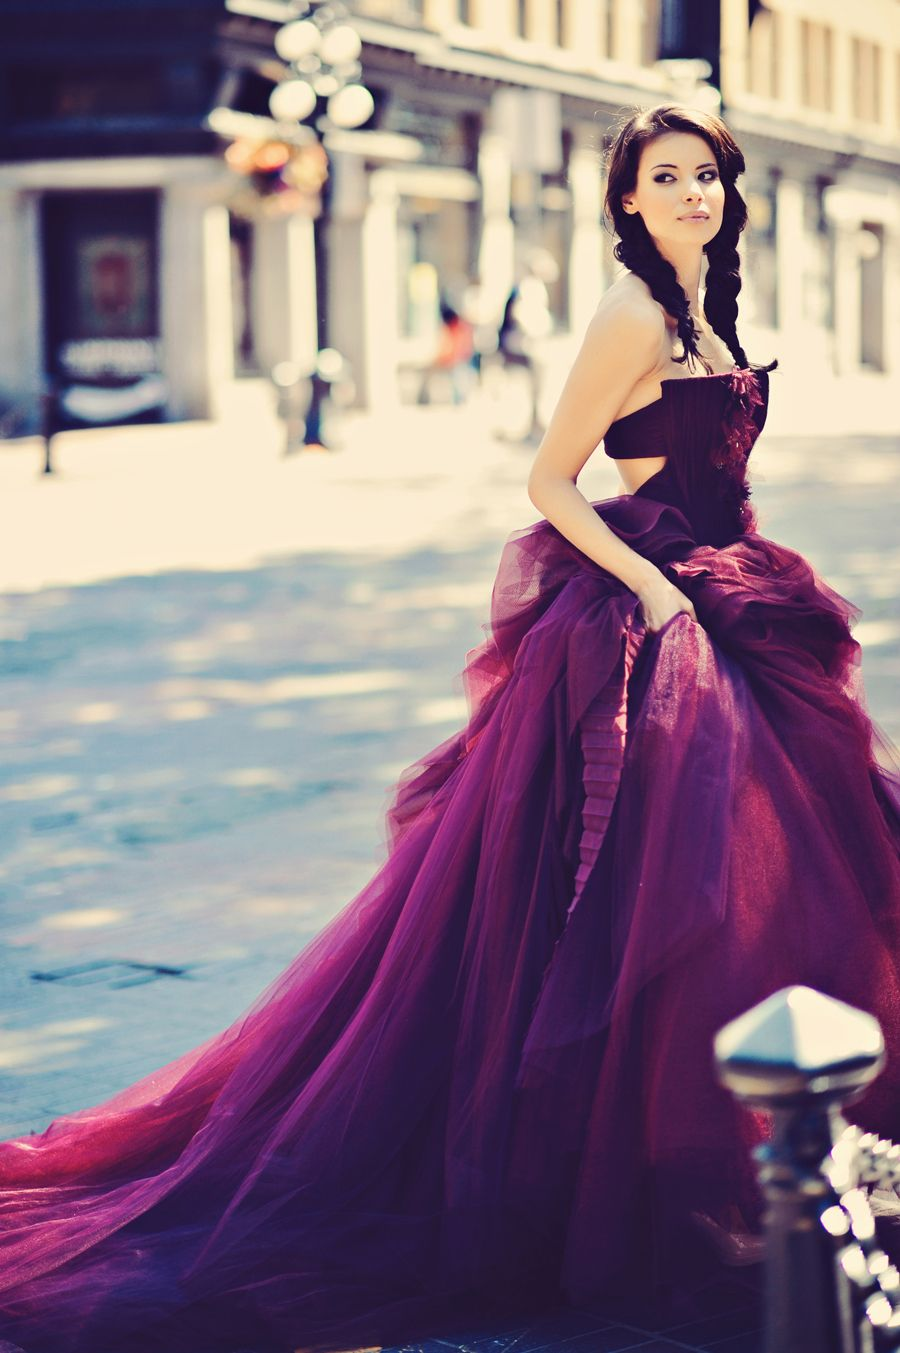 Vera wang red wedding dress  Urban Inspired Wedding Inspiration in Vancouver  Vaulting Wedding